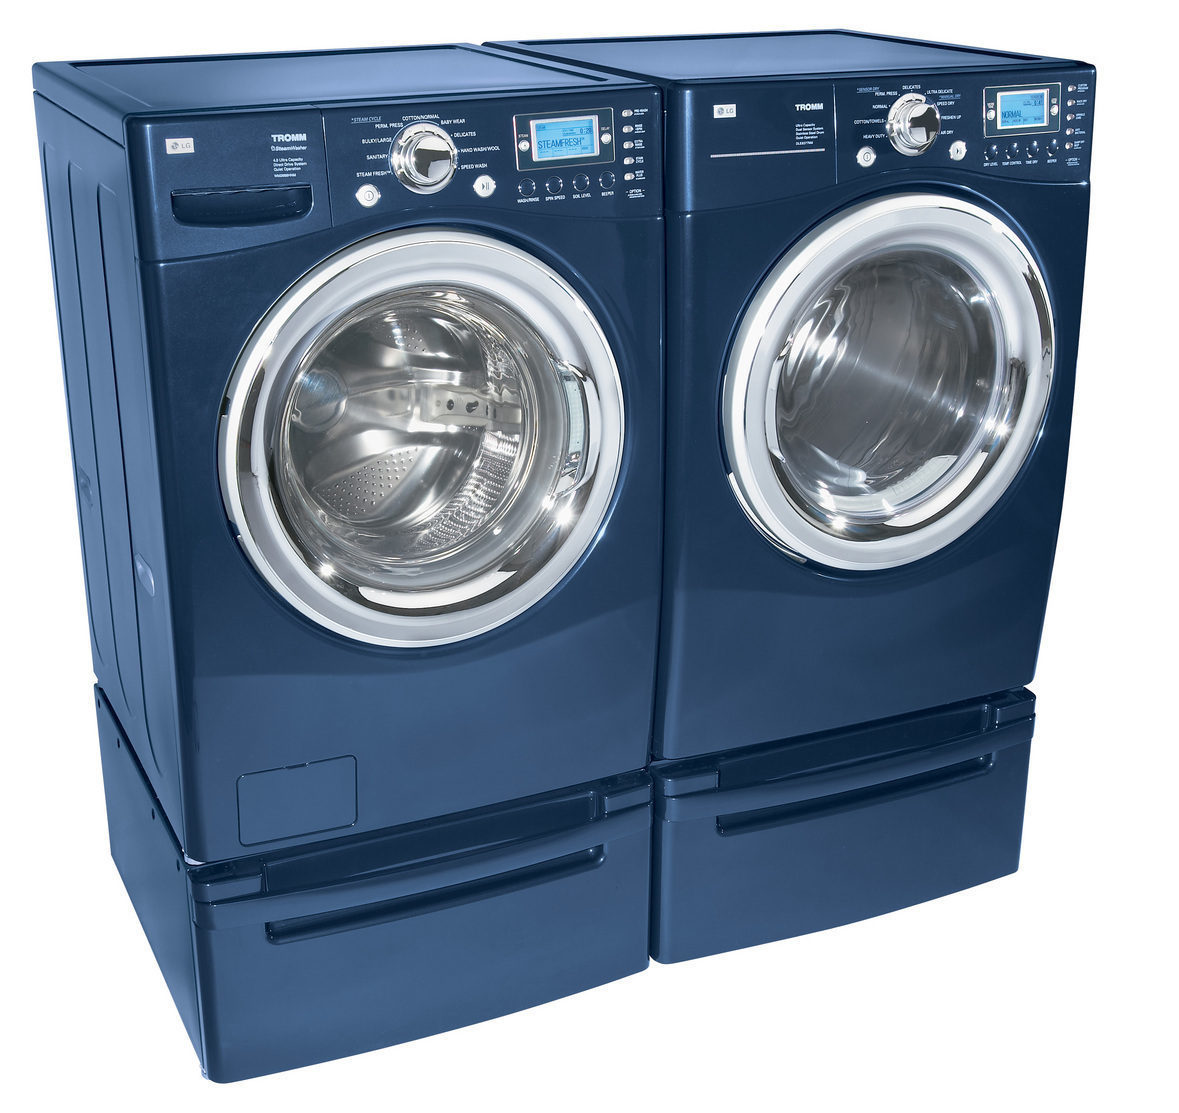 Washer And Dryer Calgary Whirlpool Maytag Washing Machine And Dishwasher Recalls